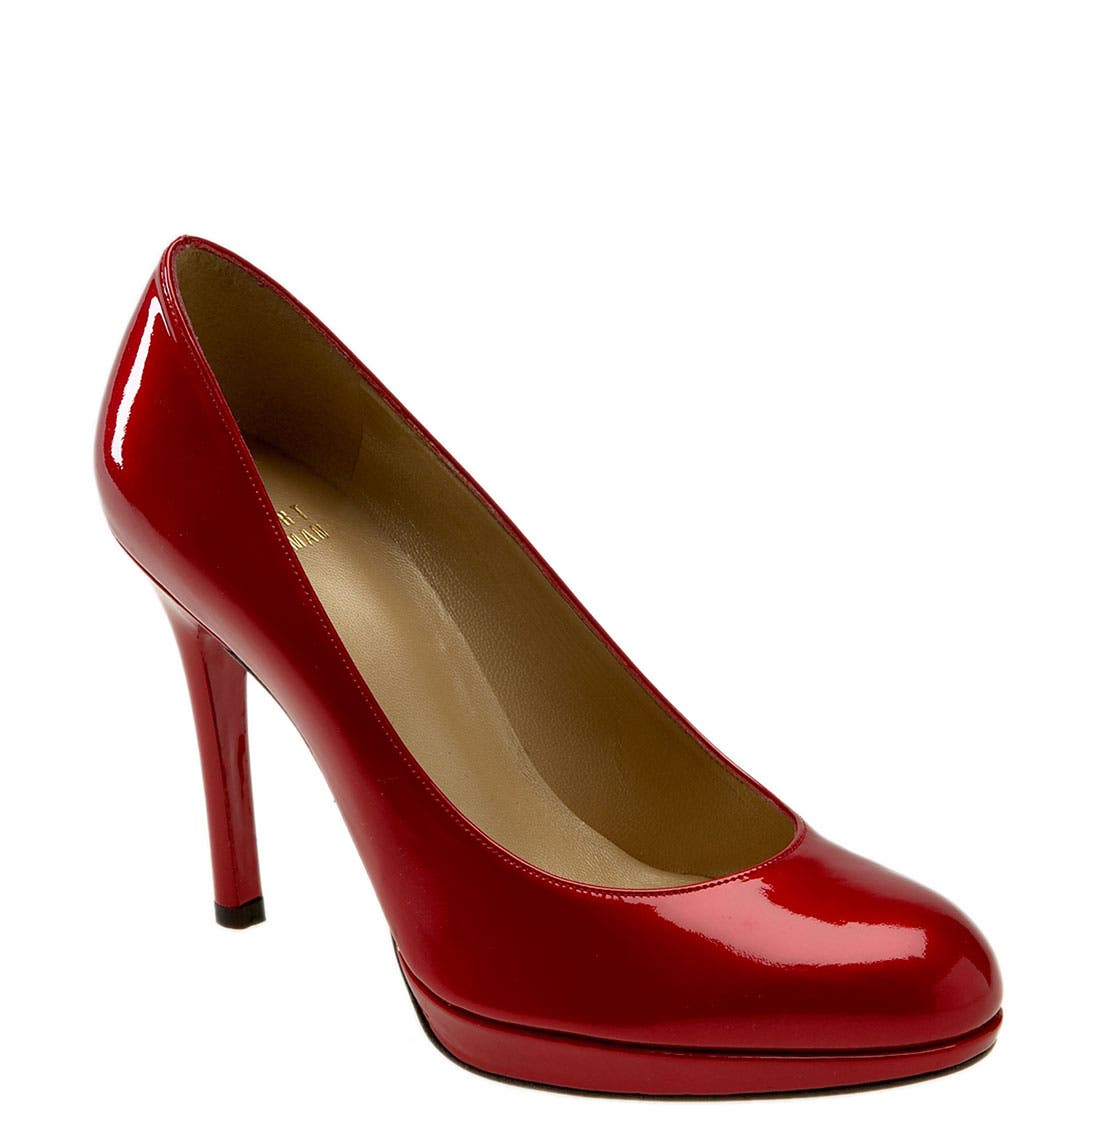 Alternate Image 1 Selected - Stuart Weitzman 'Platswoon' Pump